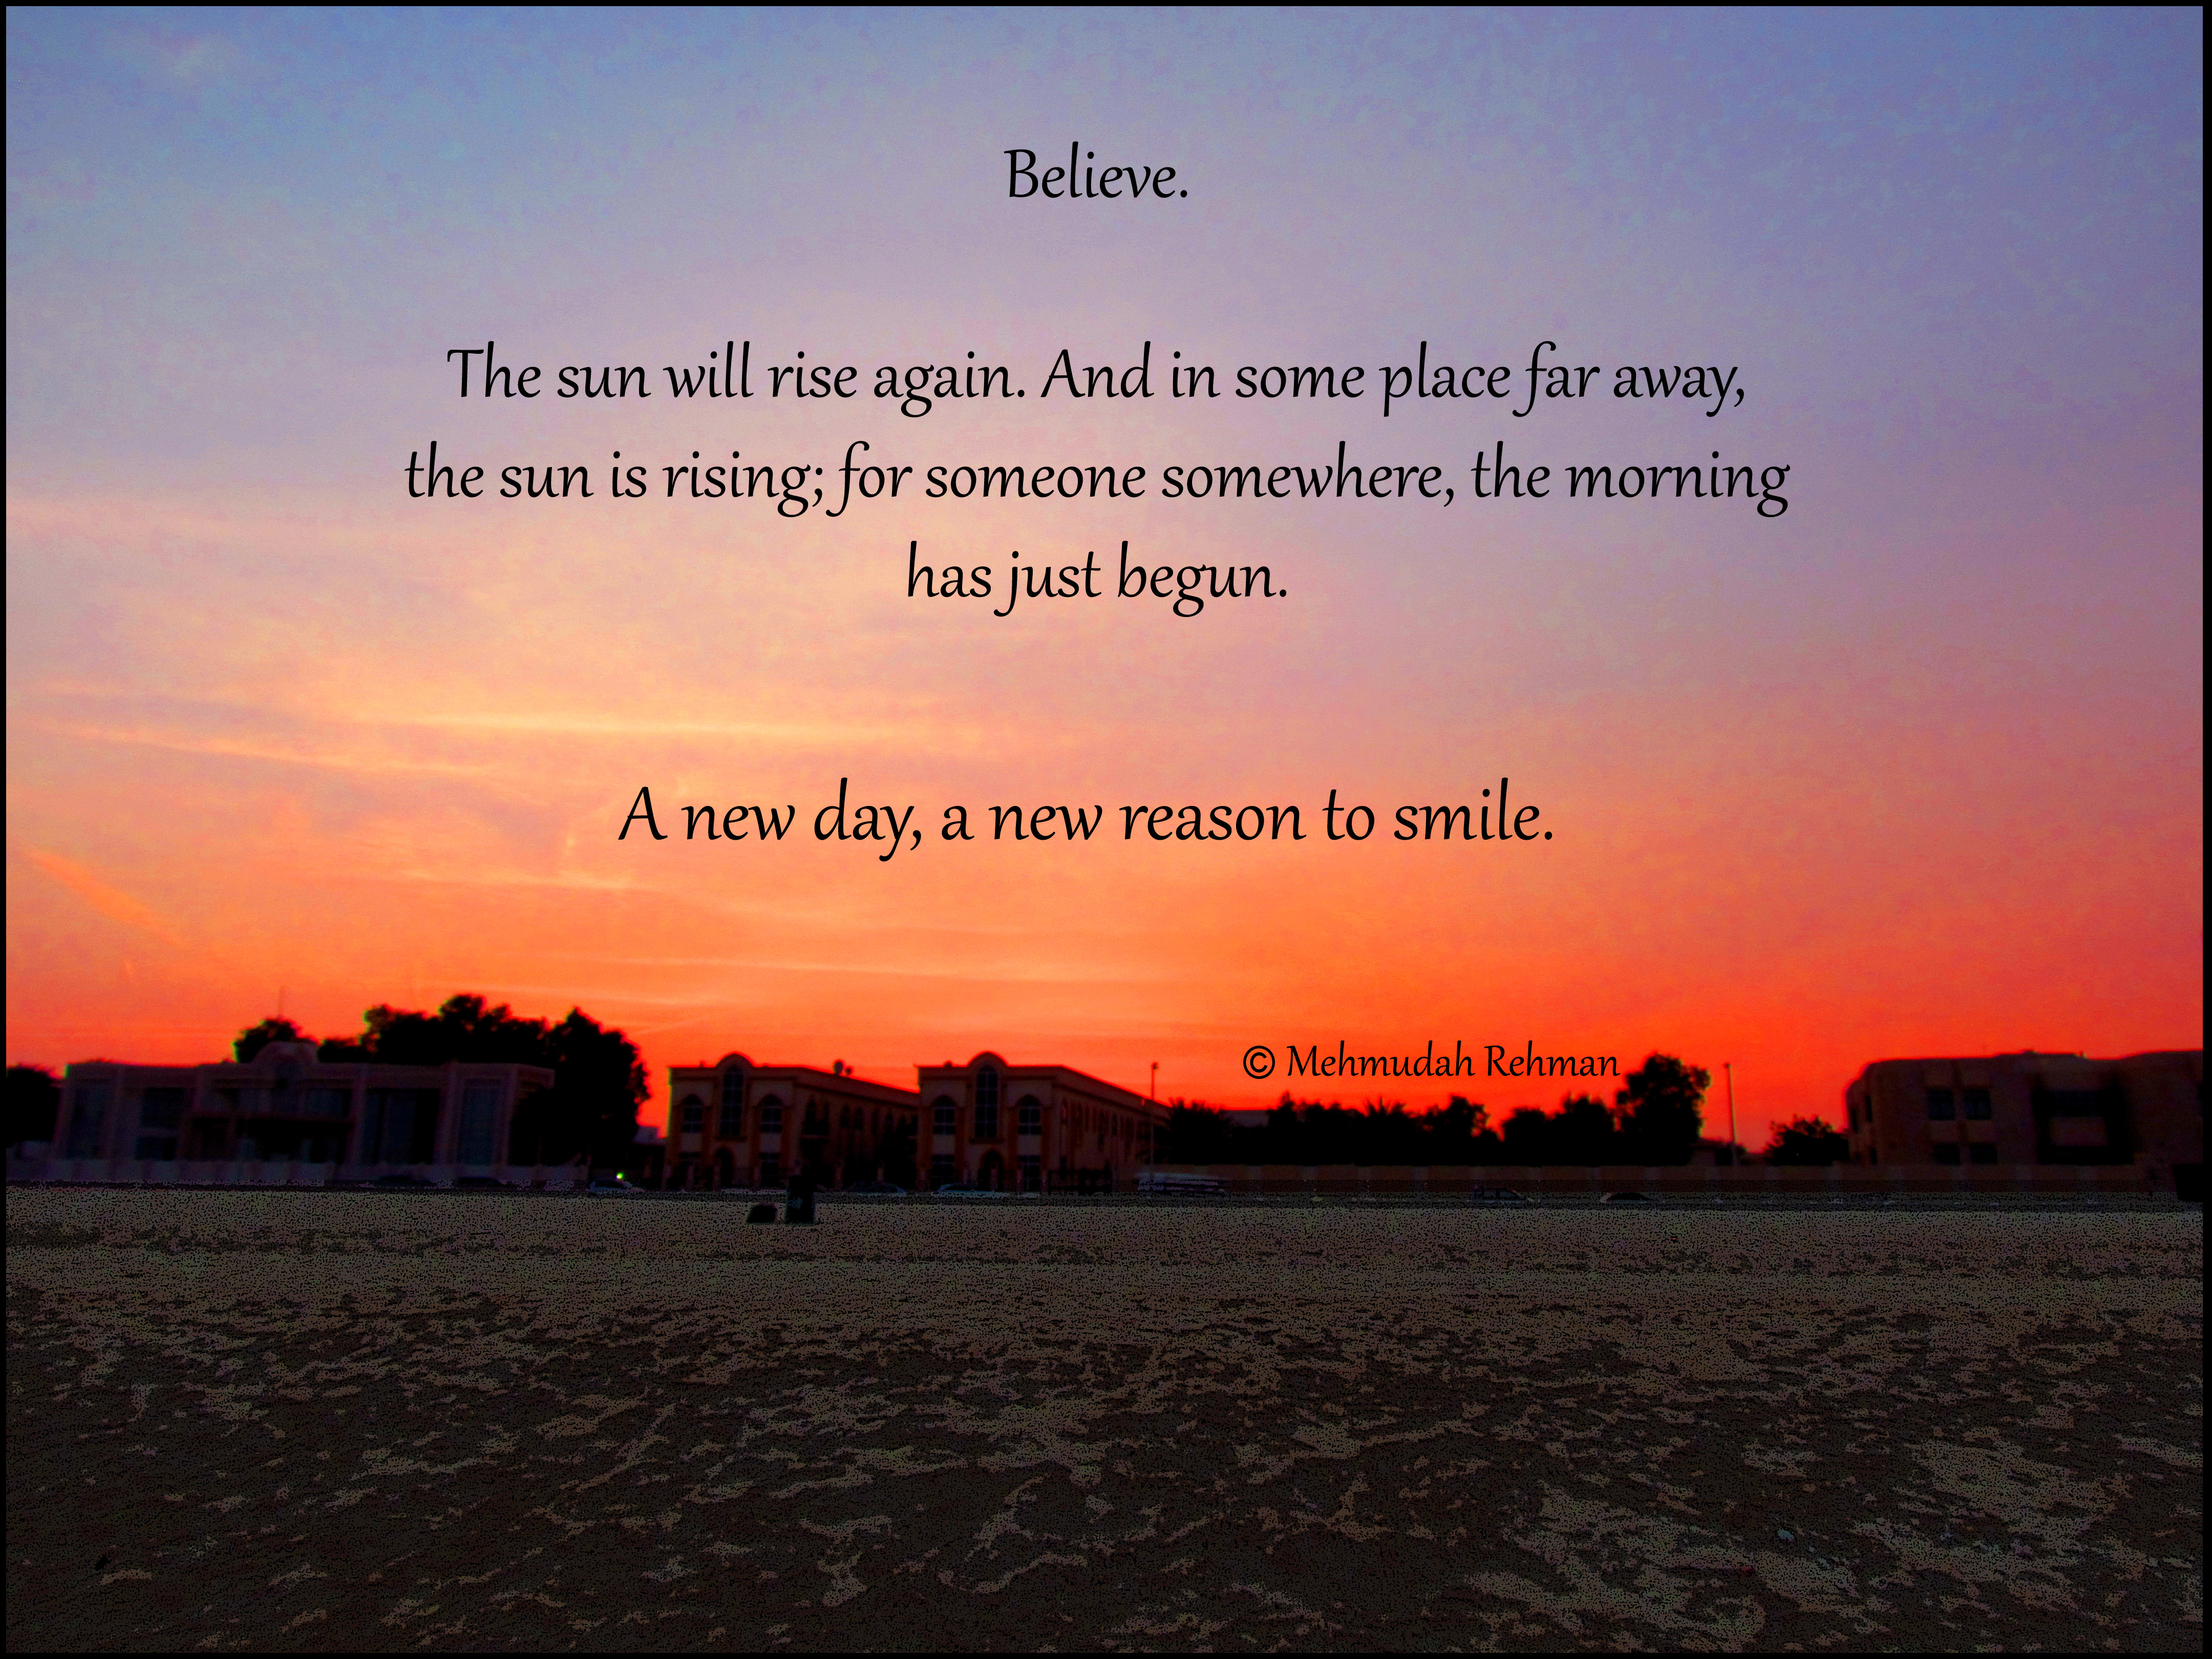 A new day, a new reason to smile